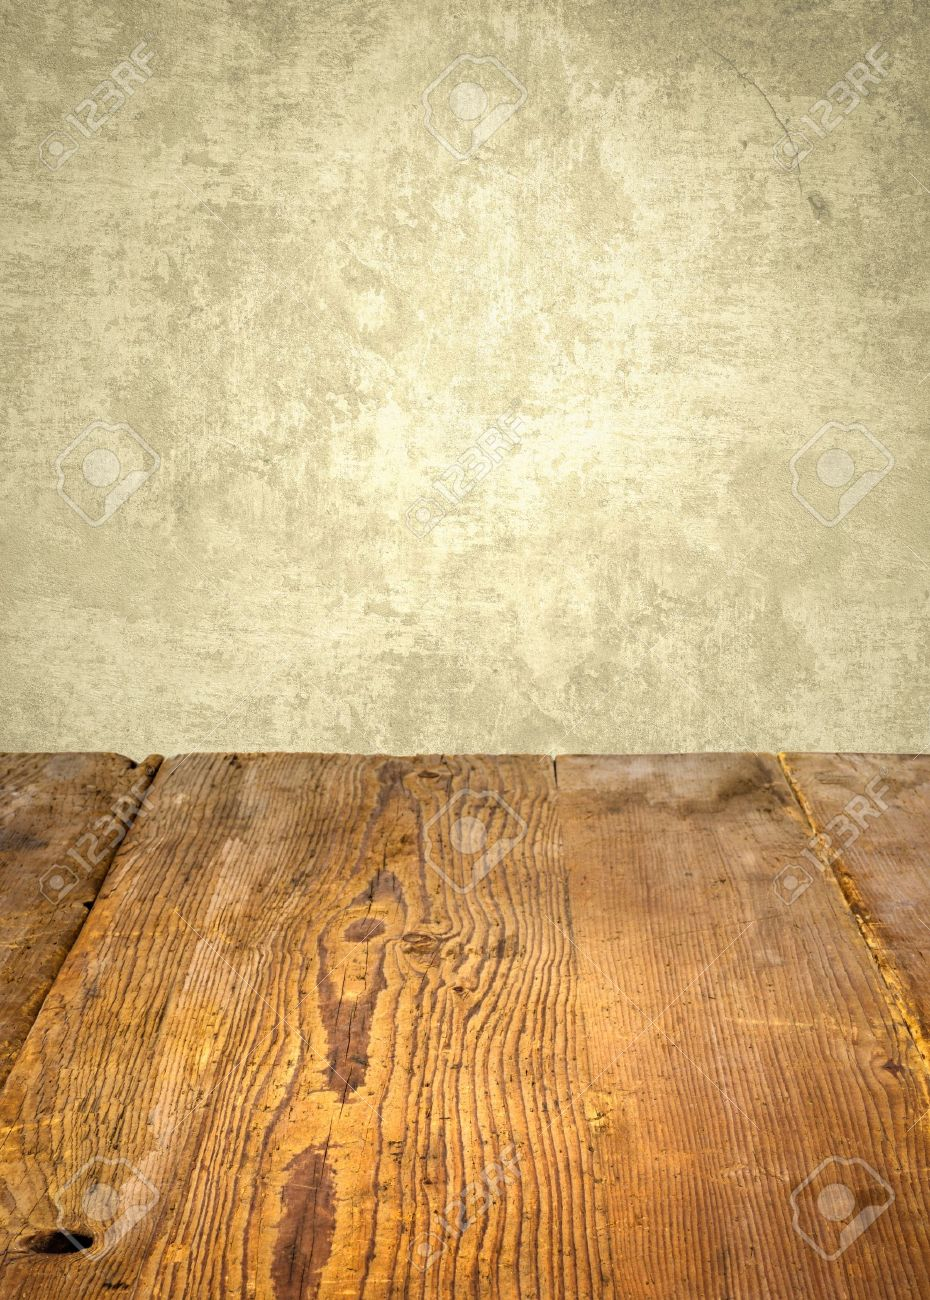 Antique Wooden Table In Front Weathered Wall Stock